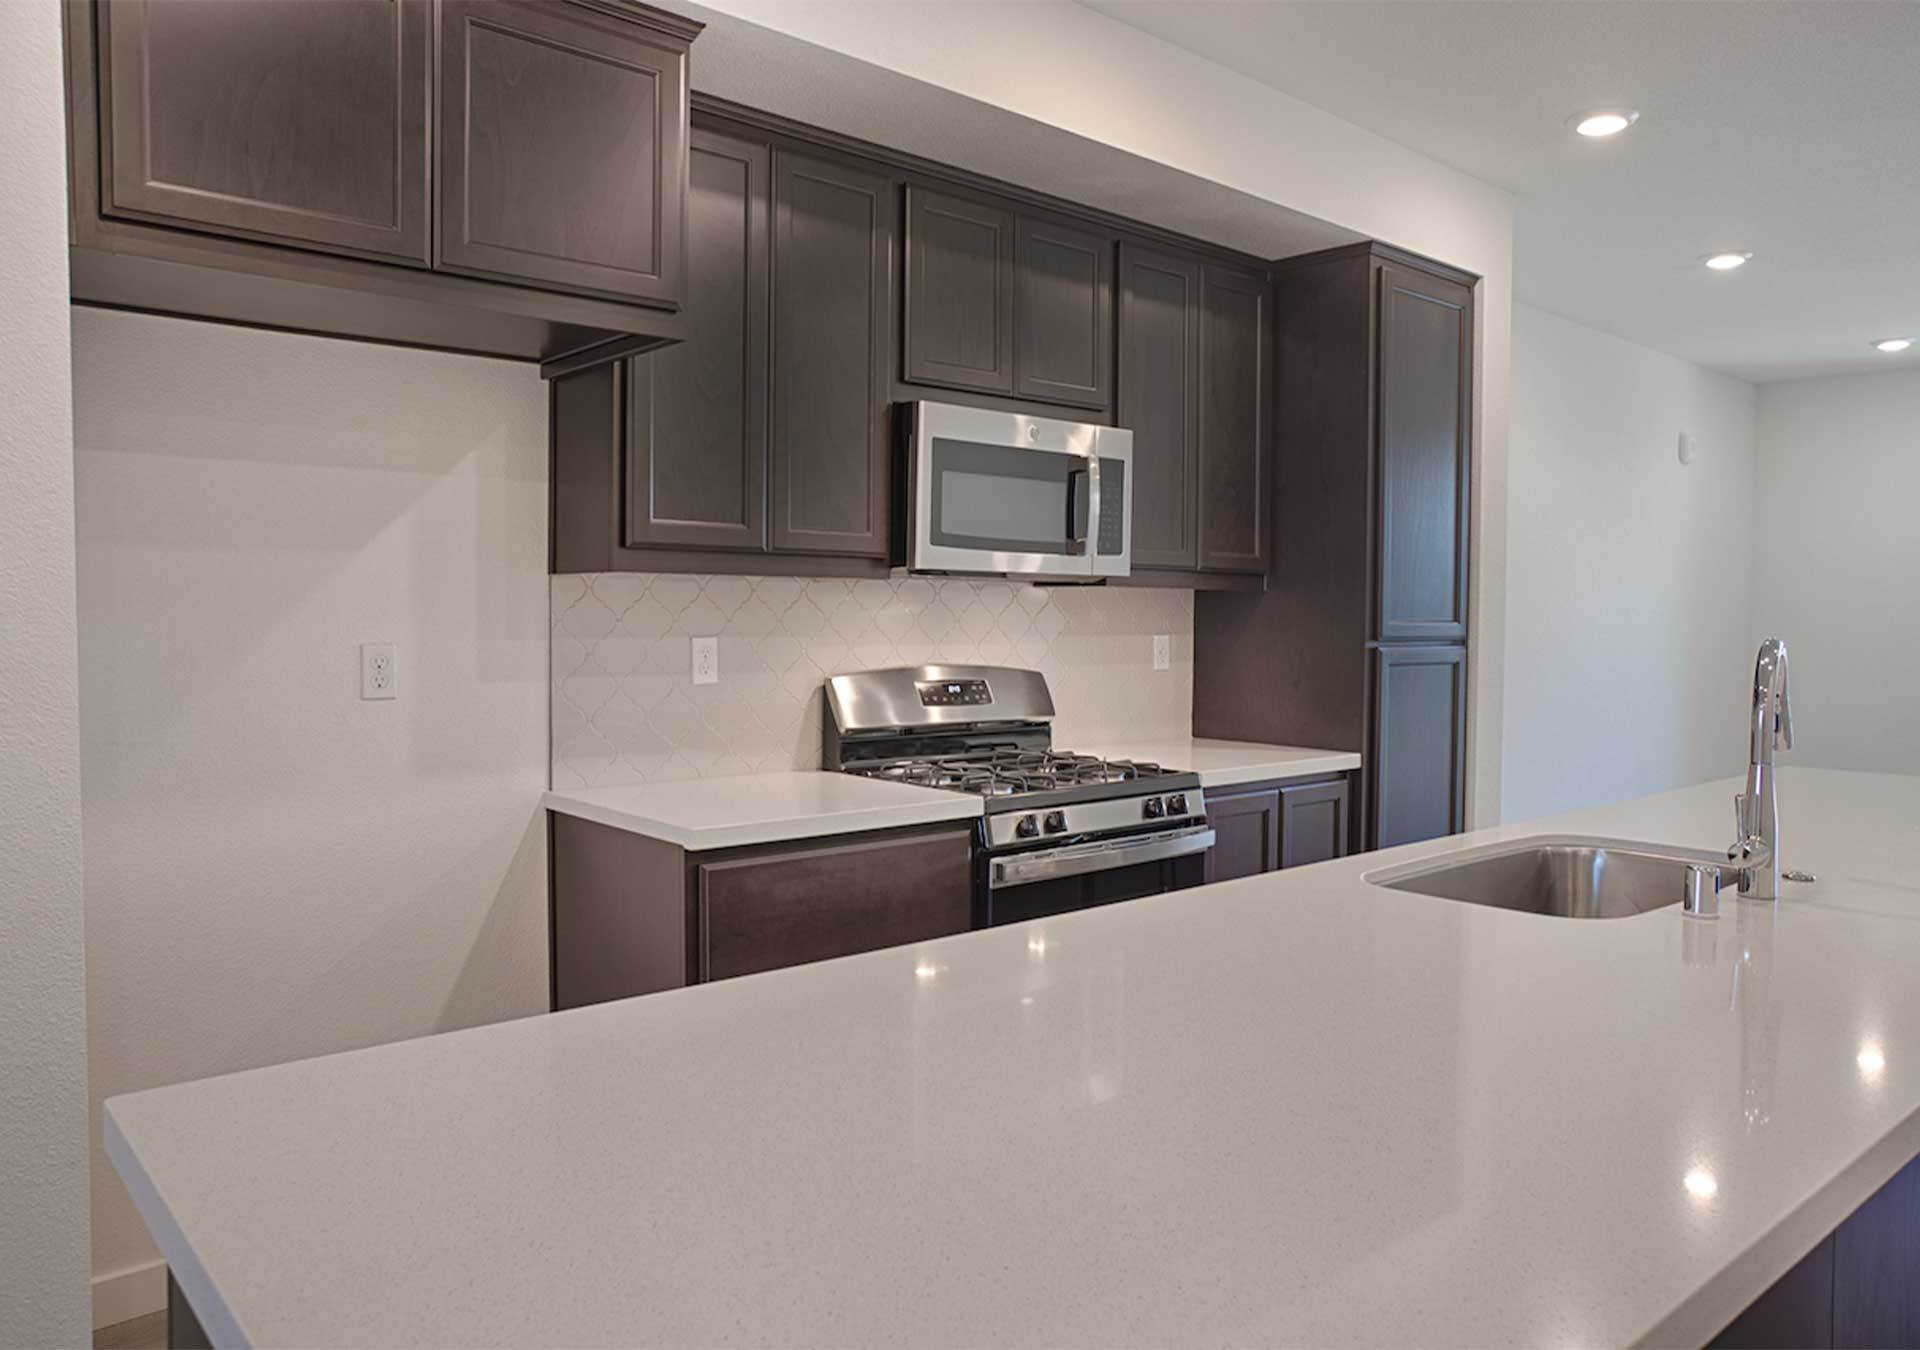 Kitchen featured in the Plan 1 By Tri Pointe Homes in Oakland-Alameda, CA